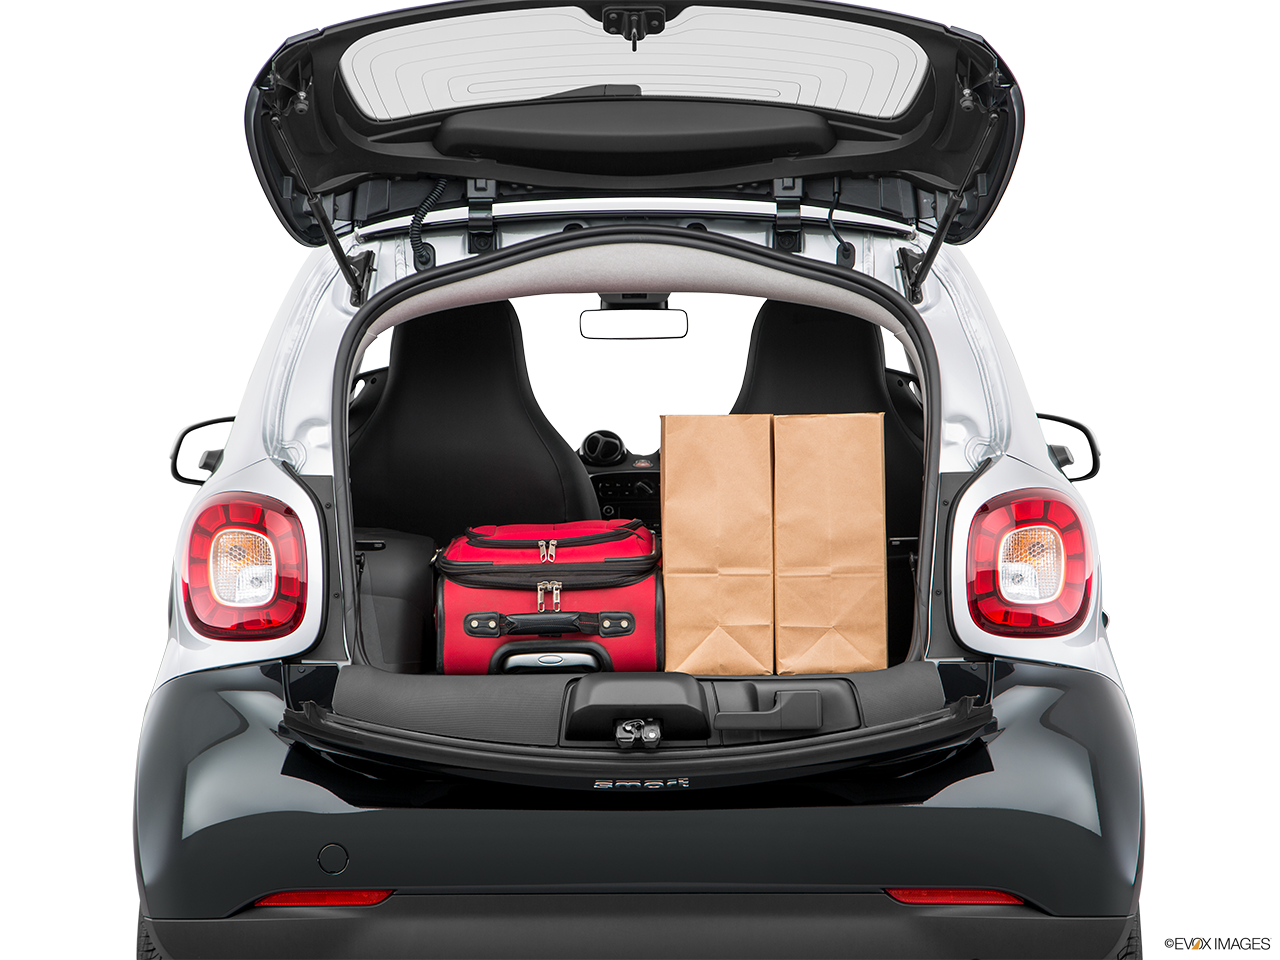 Trunk view of the Smart fortwo electric